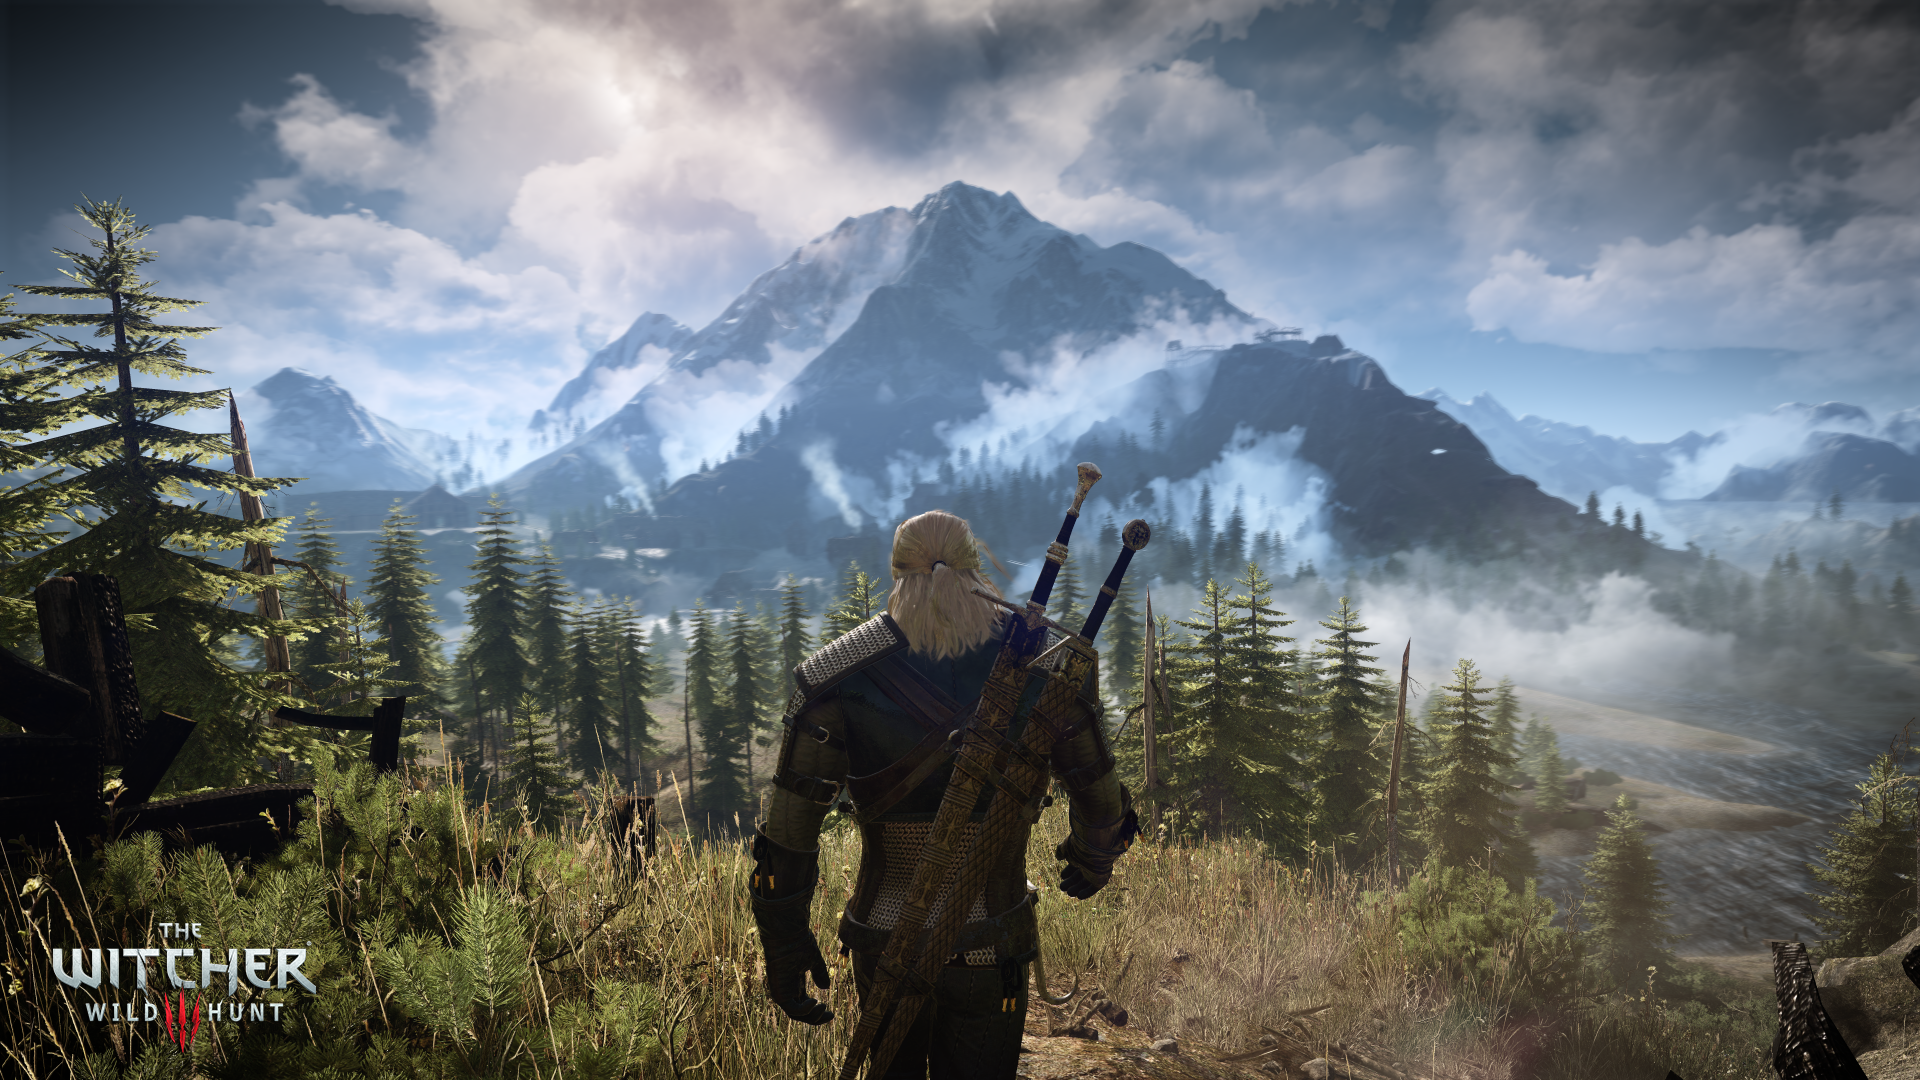 The Witcher Wallpaper x px